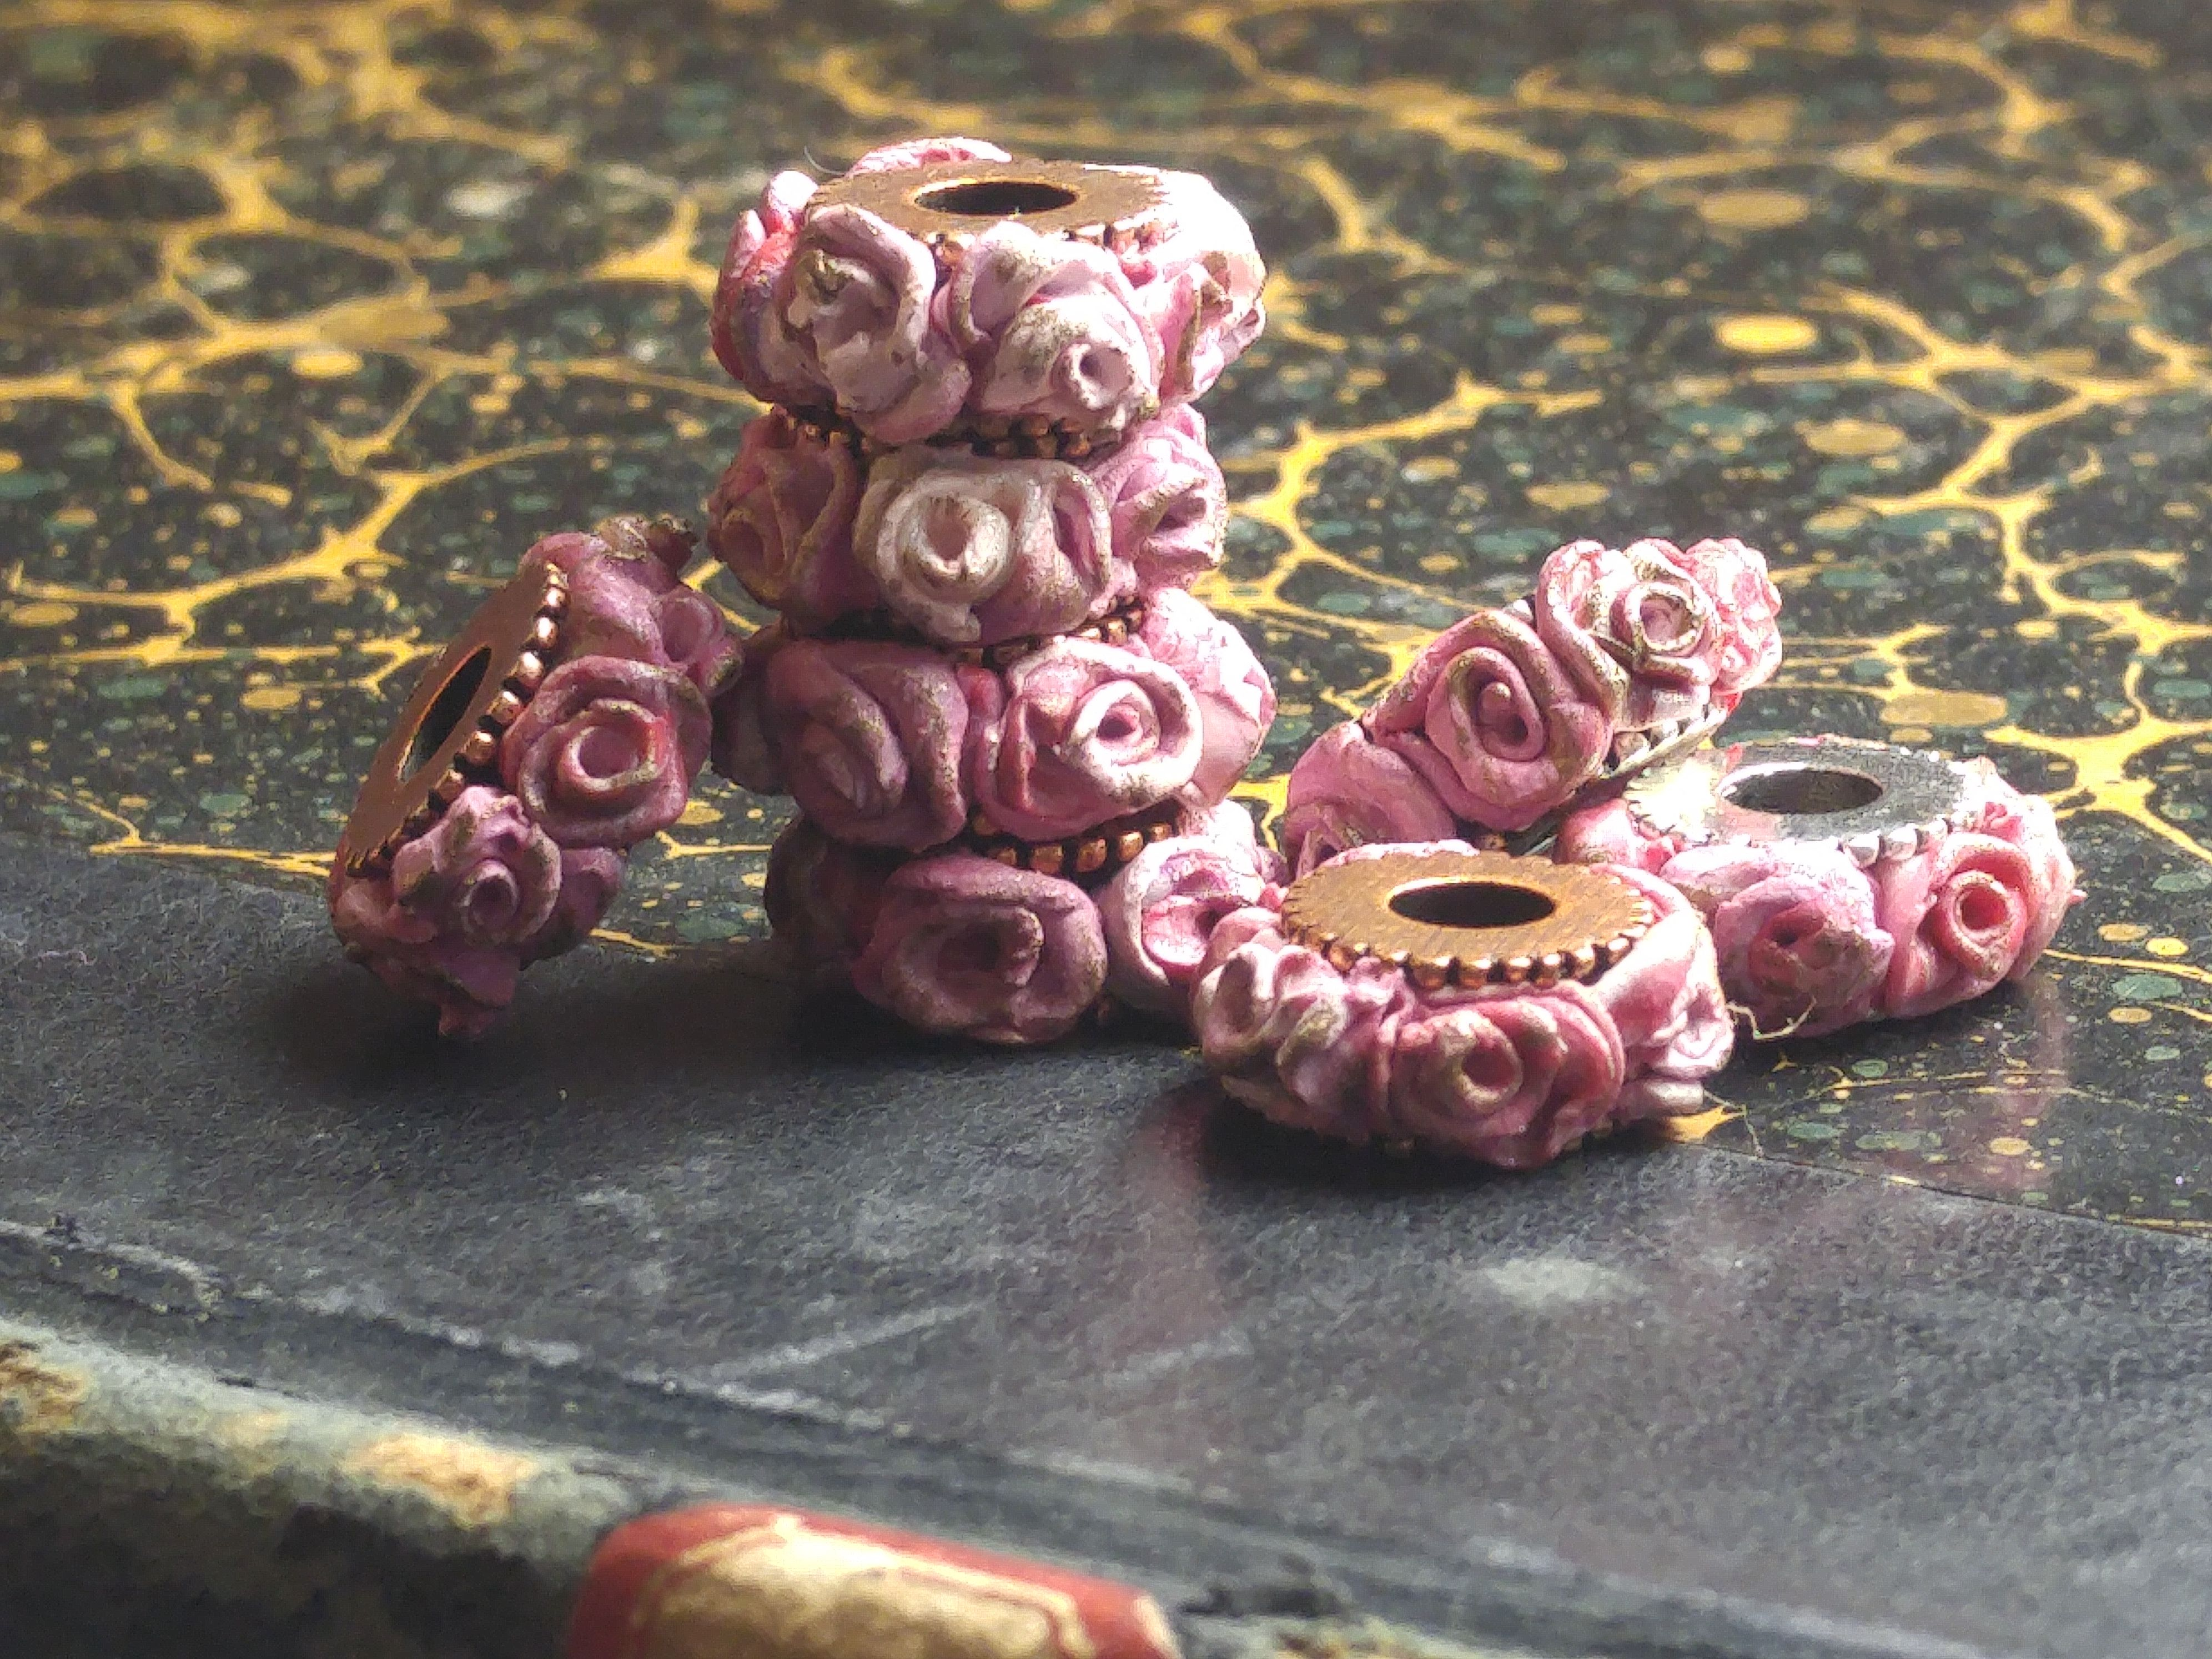 Gather Ye Rosebud wheel beads inspired by the painting Two Crowns by Sir Frank Dicksee.